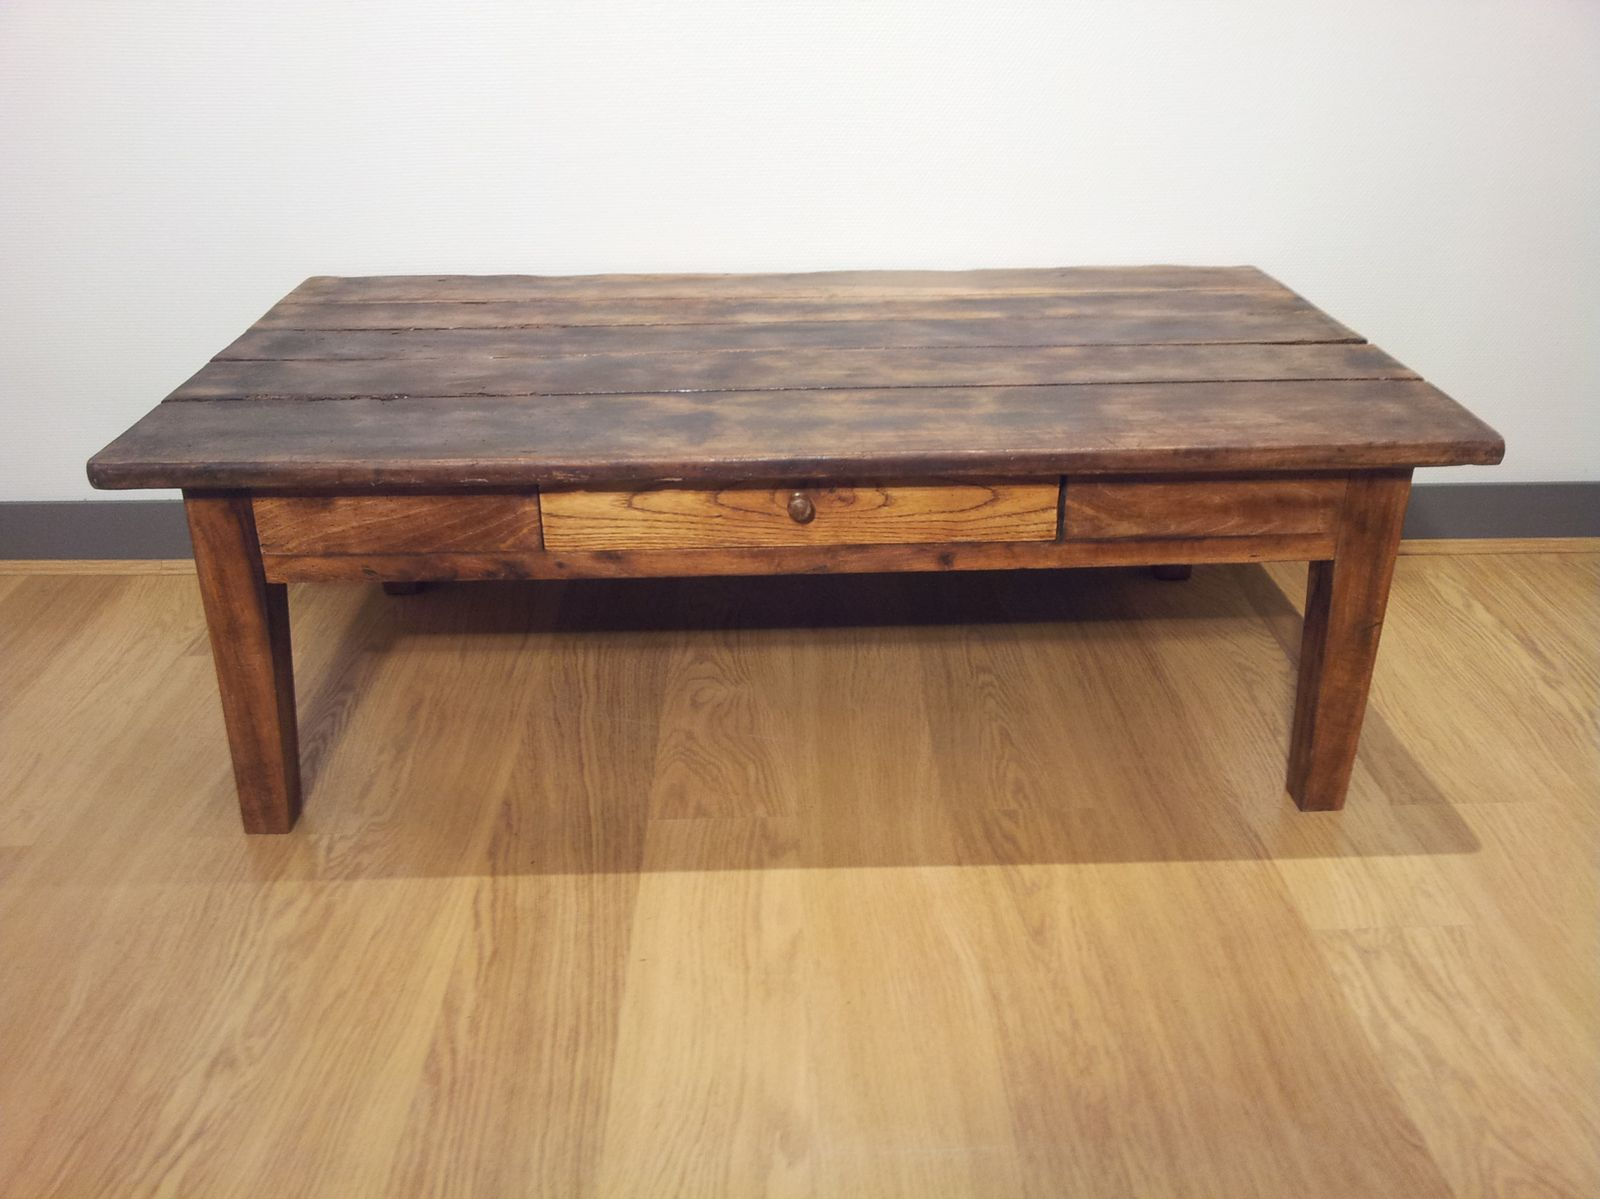 Grande Table Basse Carree Bois Maison Design Hosnya Com # Grande Table Basse Carre Indus